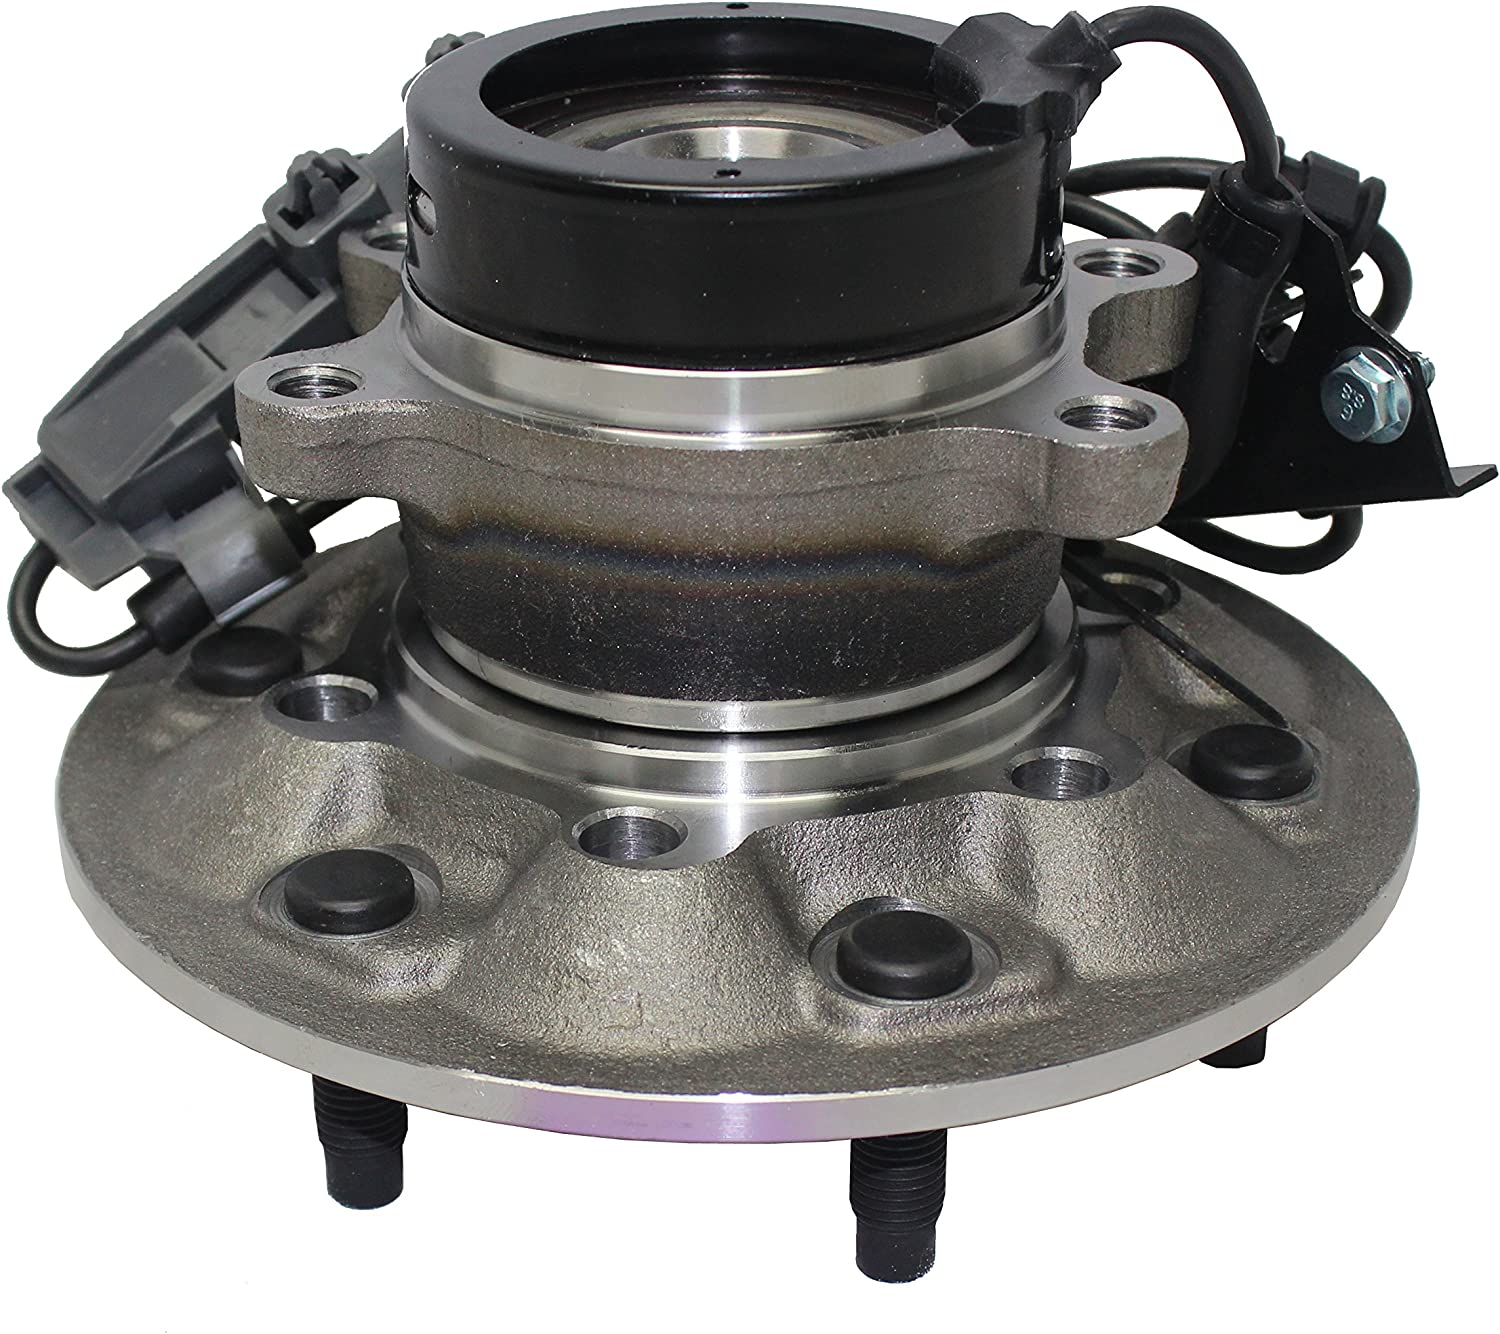 FRONT LEFT Wheel Hub Bearing Assembly Fit CHEVROLET COLORADO 4WD 2004-2008